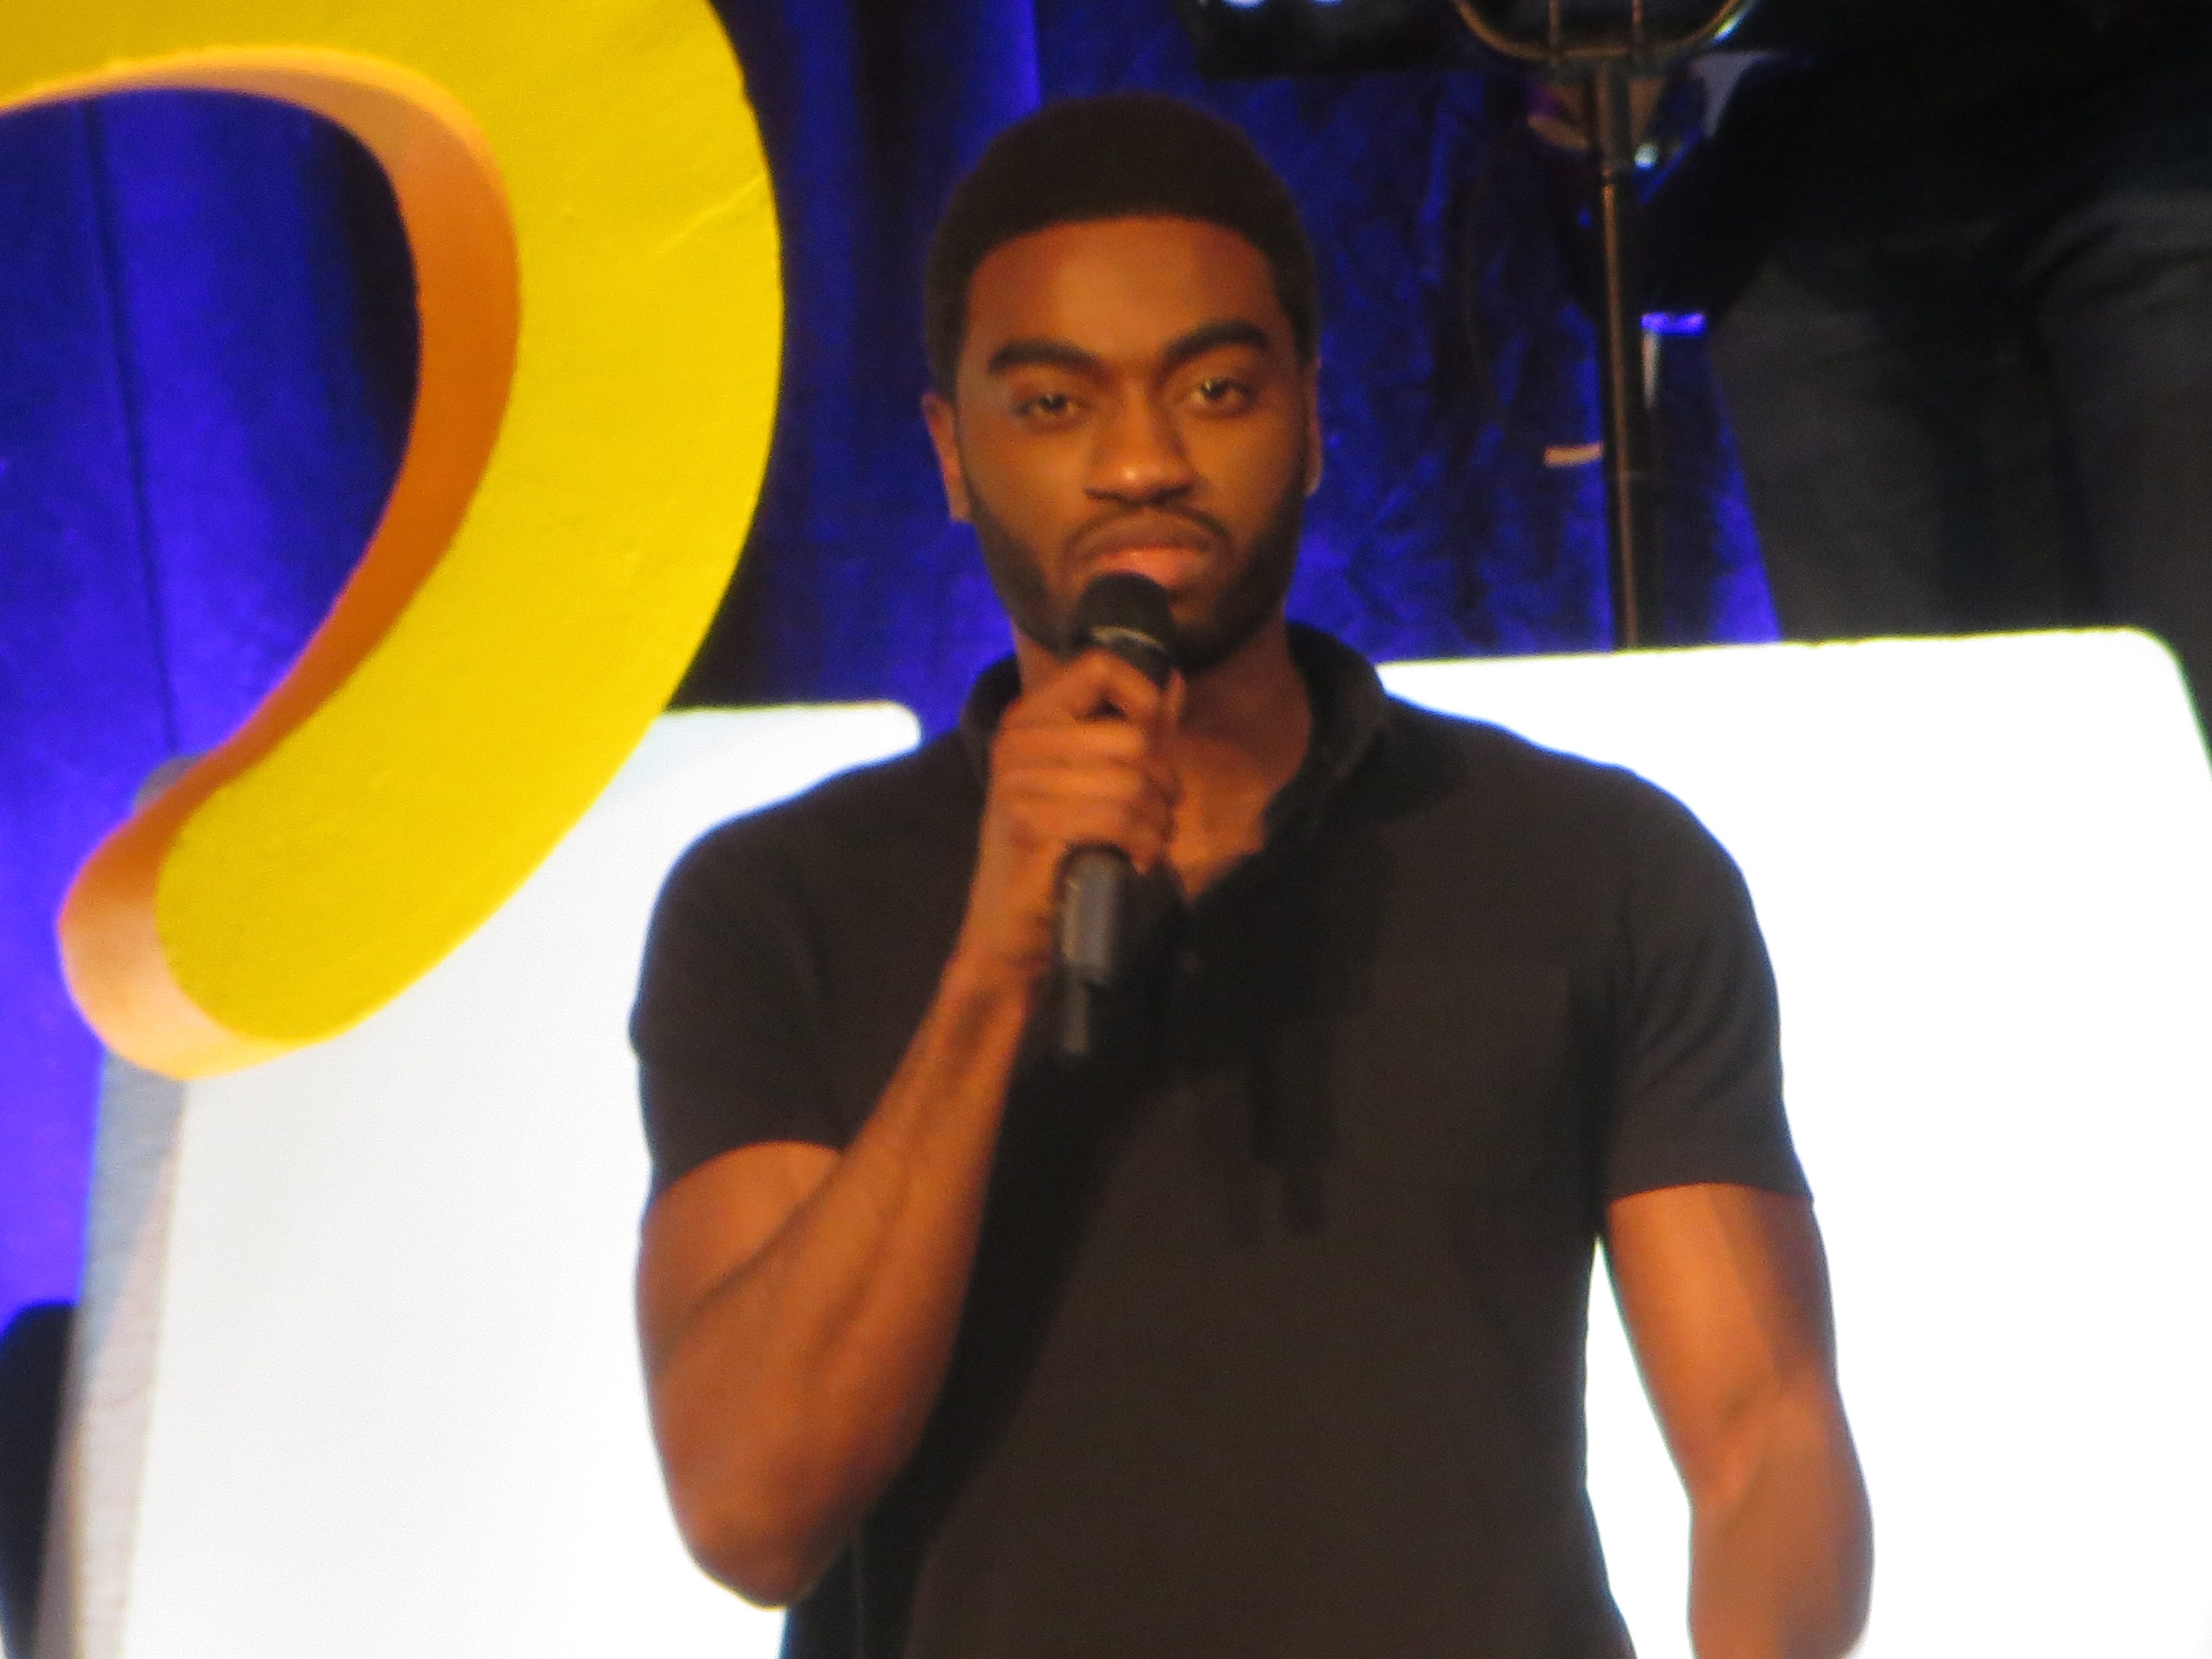 Jelani Alladin performs at BroadwayCon 2019, held Jan. 11 to 13, 2019, at the New York Hilton Midtown in Manhattan.